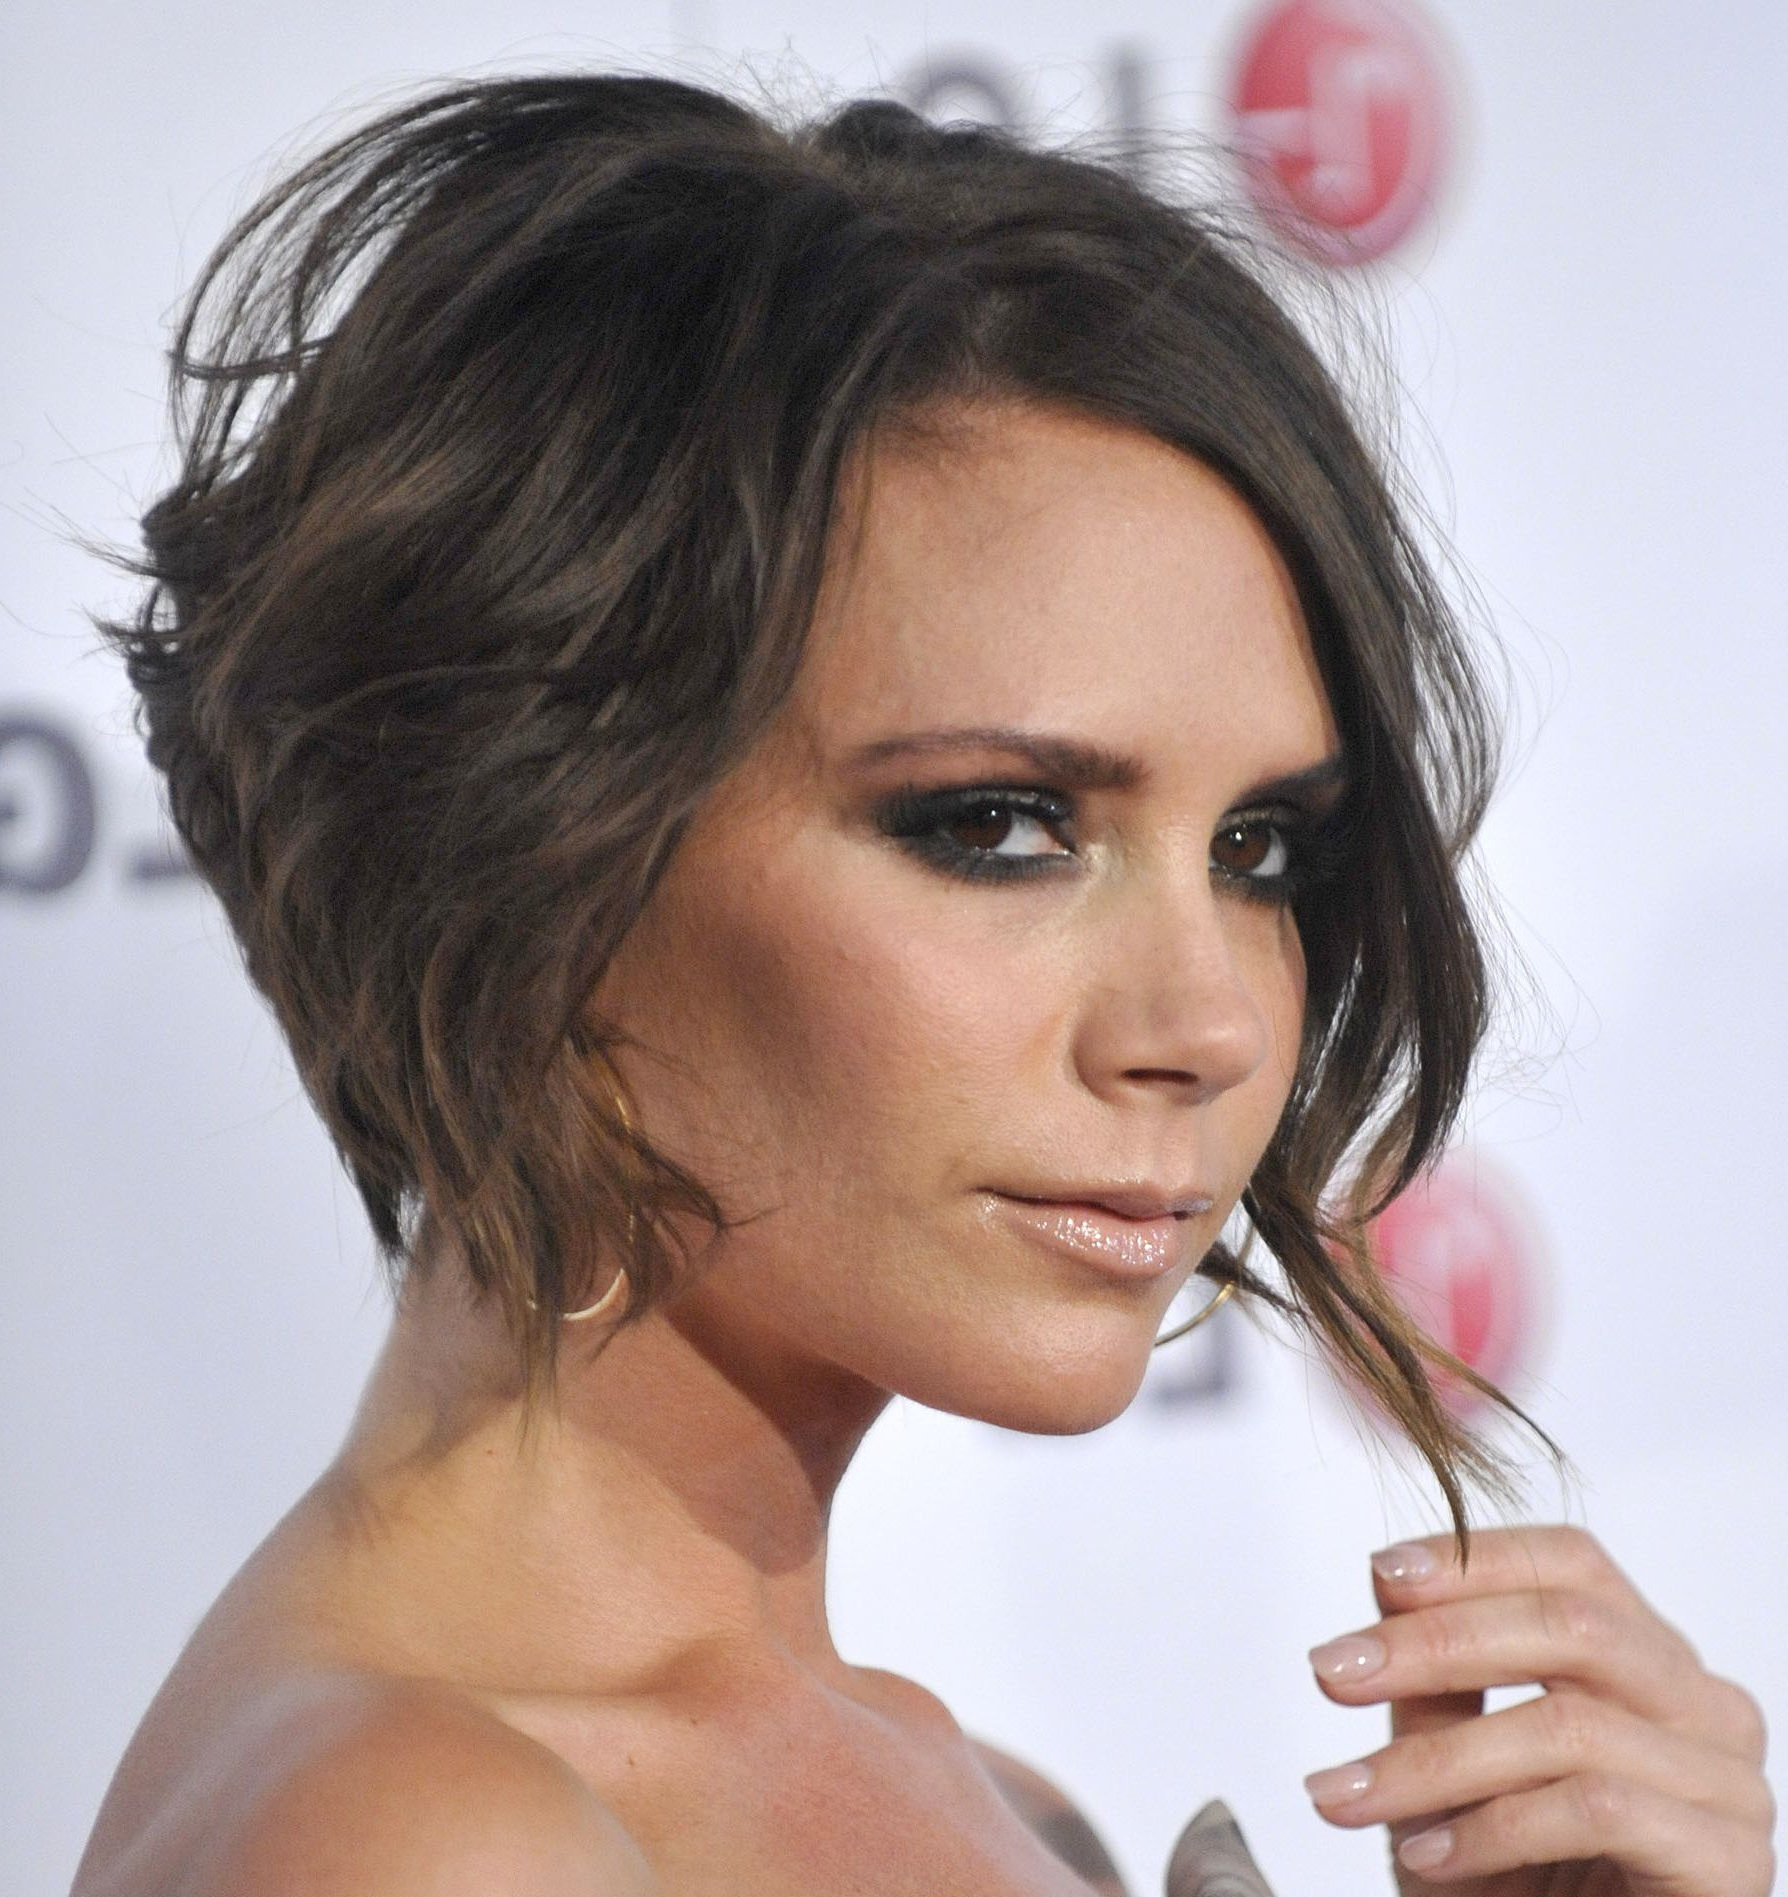 Slideshow: Celebrities With Short Hair In Victoria Beckham Short Hairstyles (View 13 of 25)